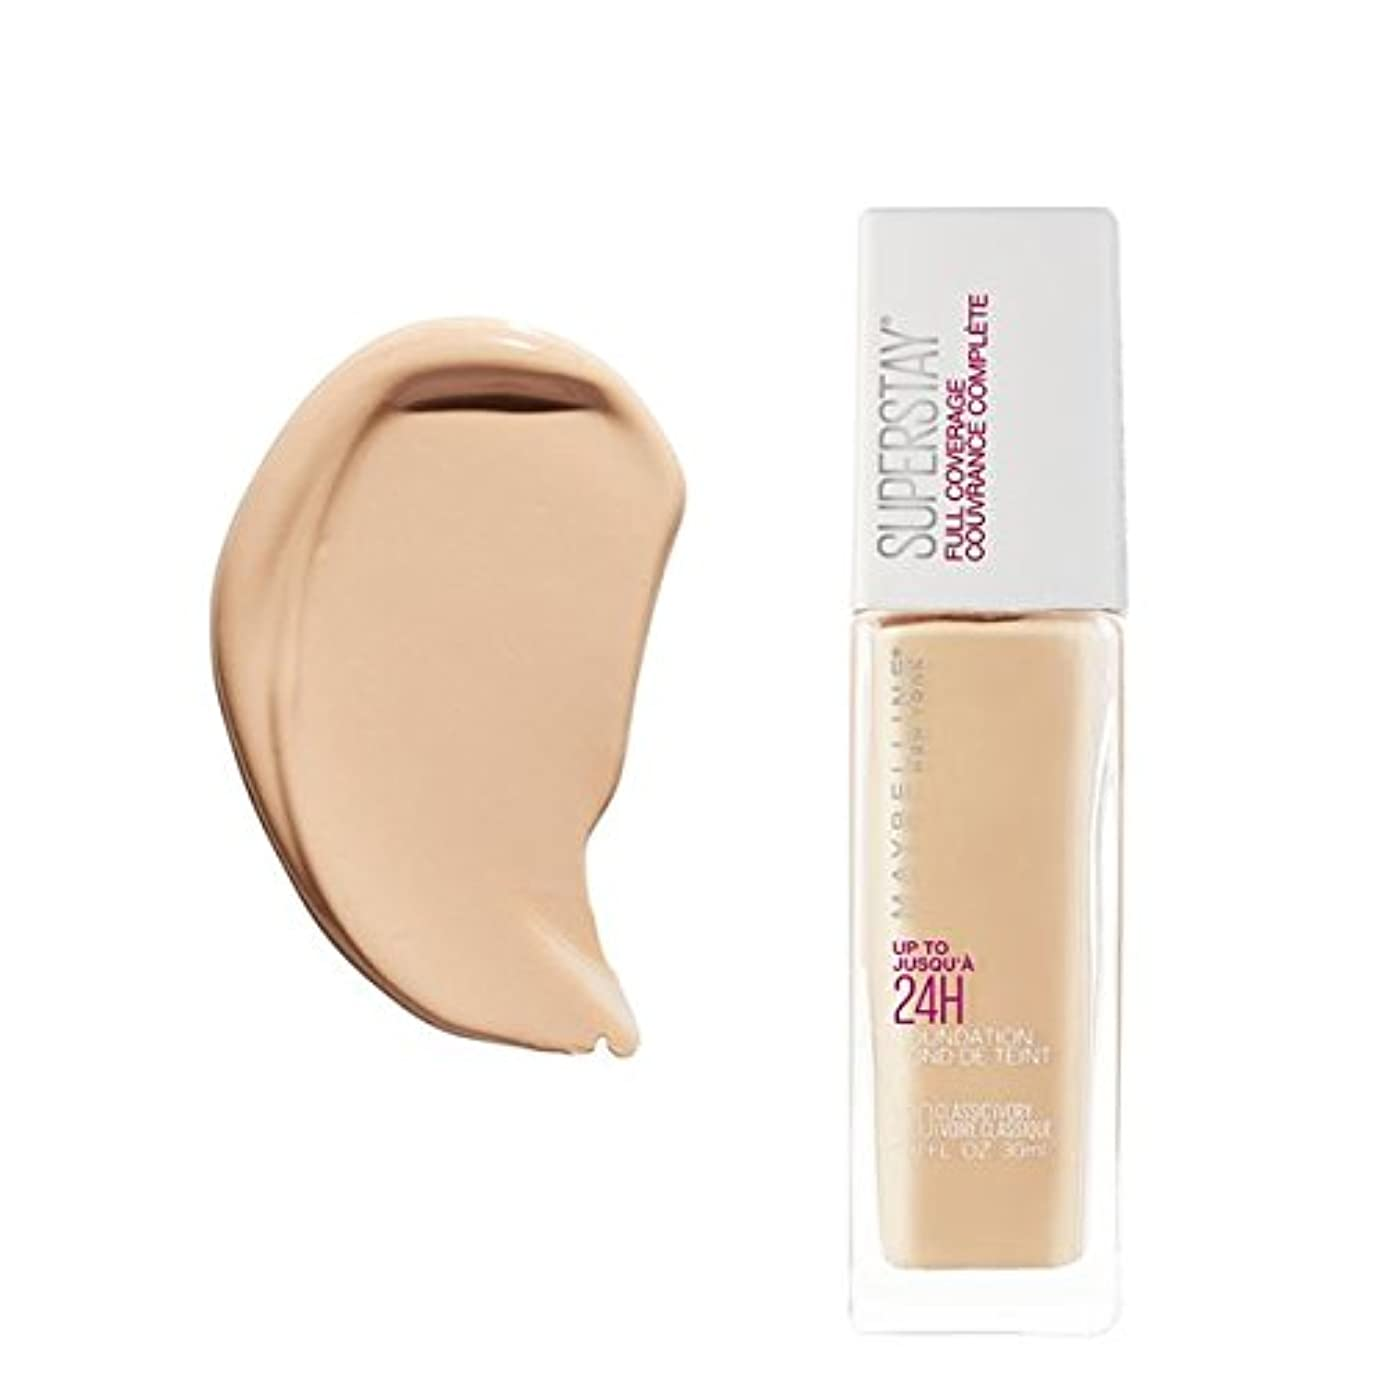 武器うがいたくさんの(3 Pack) MAYBELLINE Superstay Full Coverage Foundation - Classic Ivory 120 (並行輸入品)